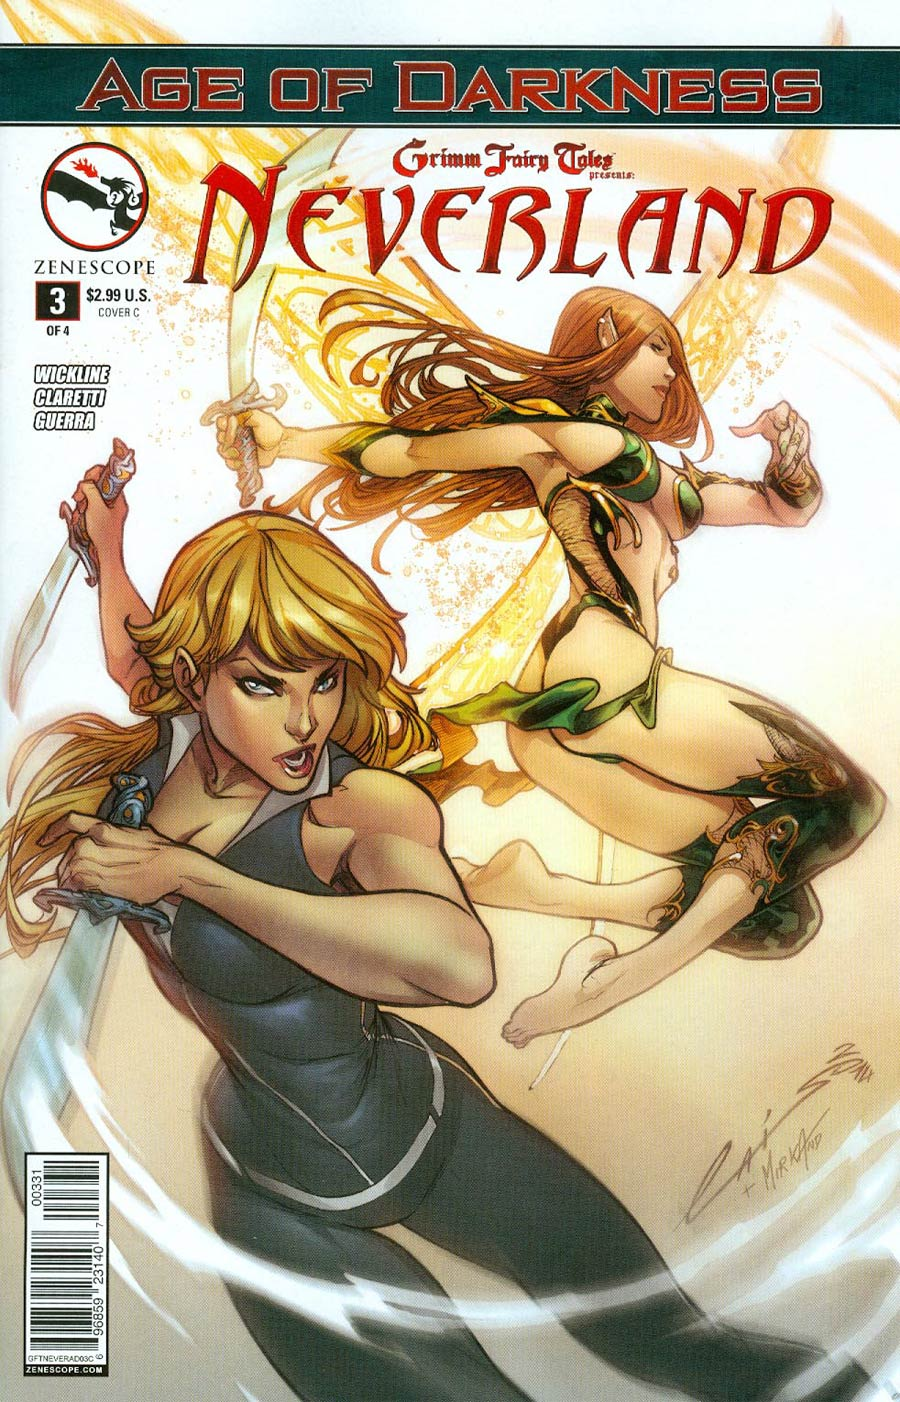 Grimm Fairy Tales Presents Neverland Age Of Darkness #3 Cover C Emilio Laiso